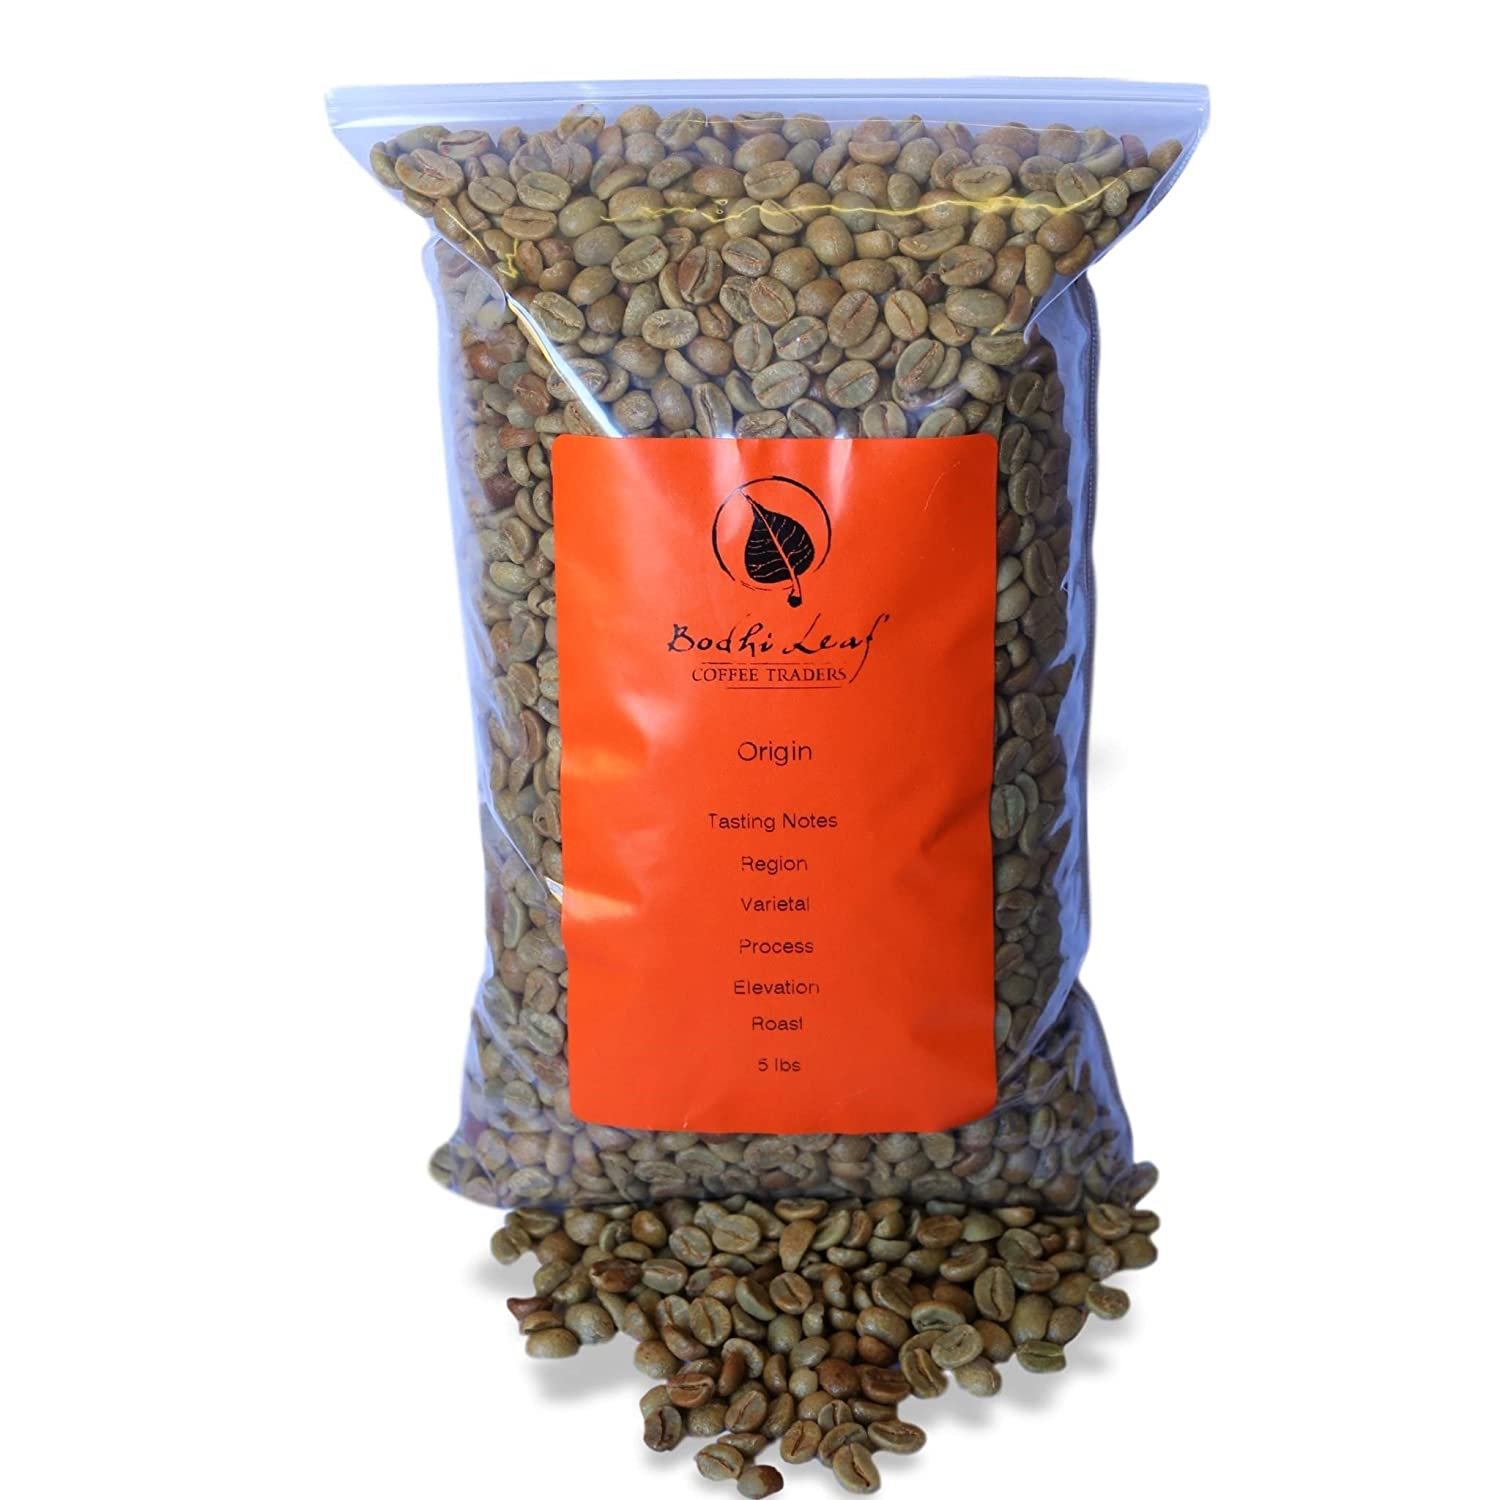 (5 lbs) Kenya Baragwi Unroasted Green Coffee Beans, Specialty Graded Raw African Beans for Home Roasting Bodhi Leaf Trading Company